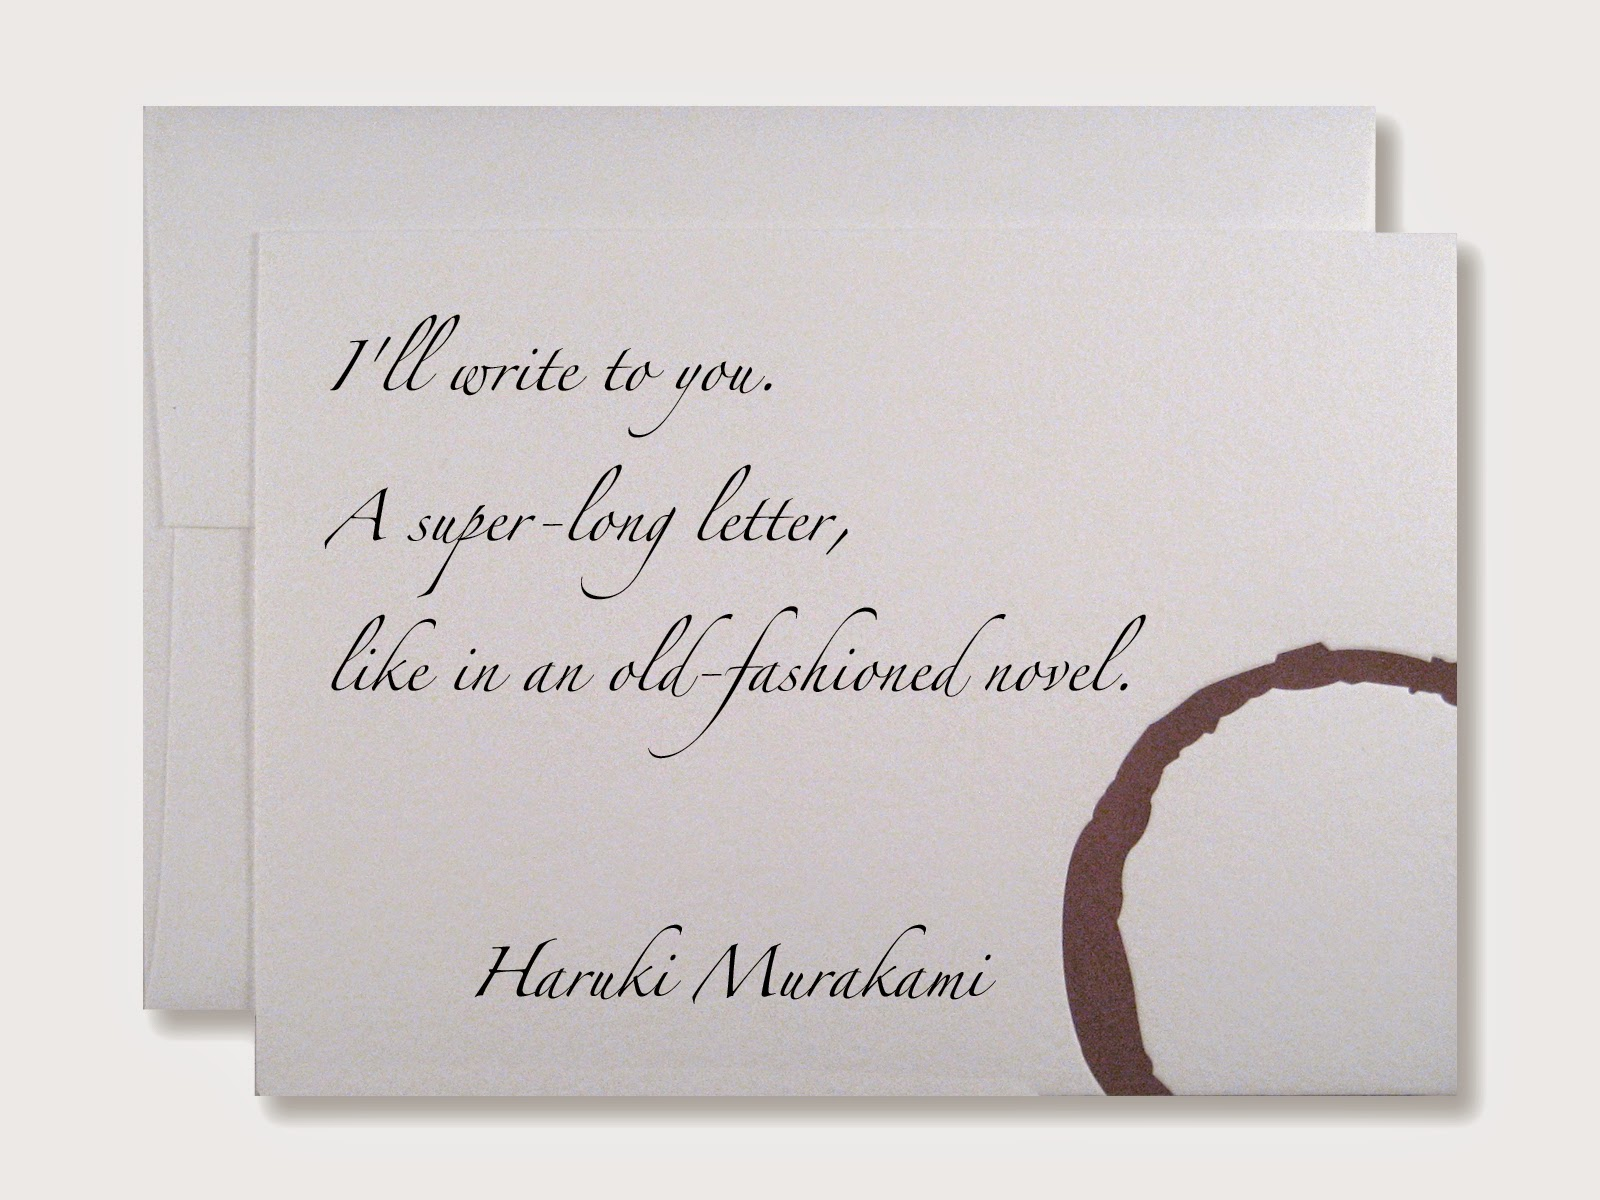 I'll write to you. A super-long letter, like in an old-fashioned novel. Haruki Murakami